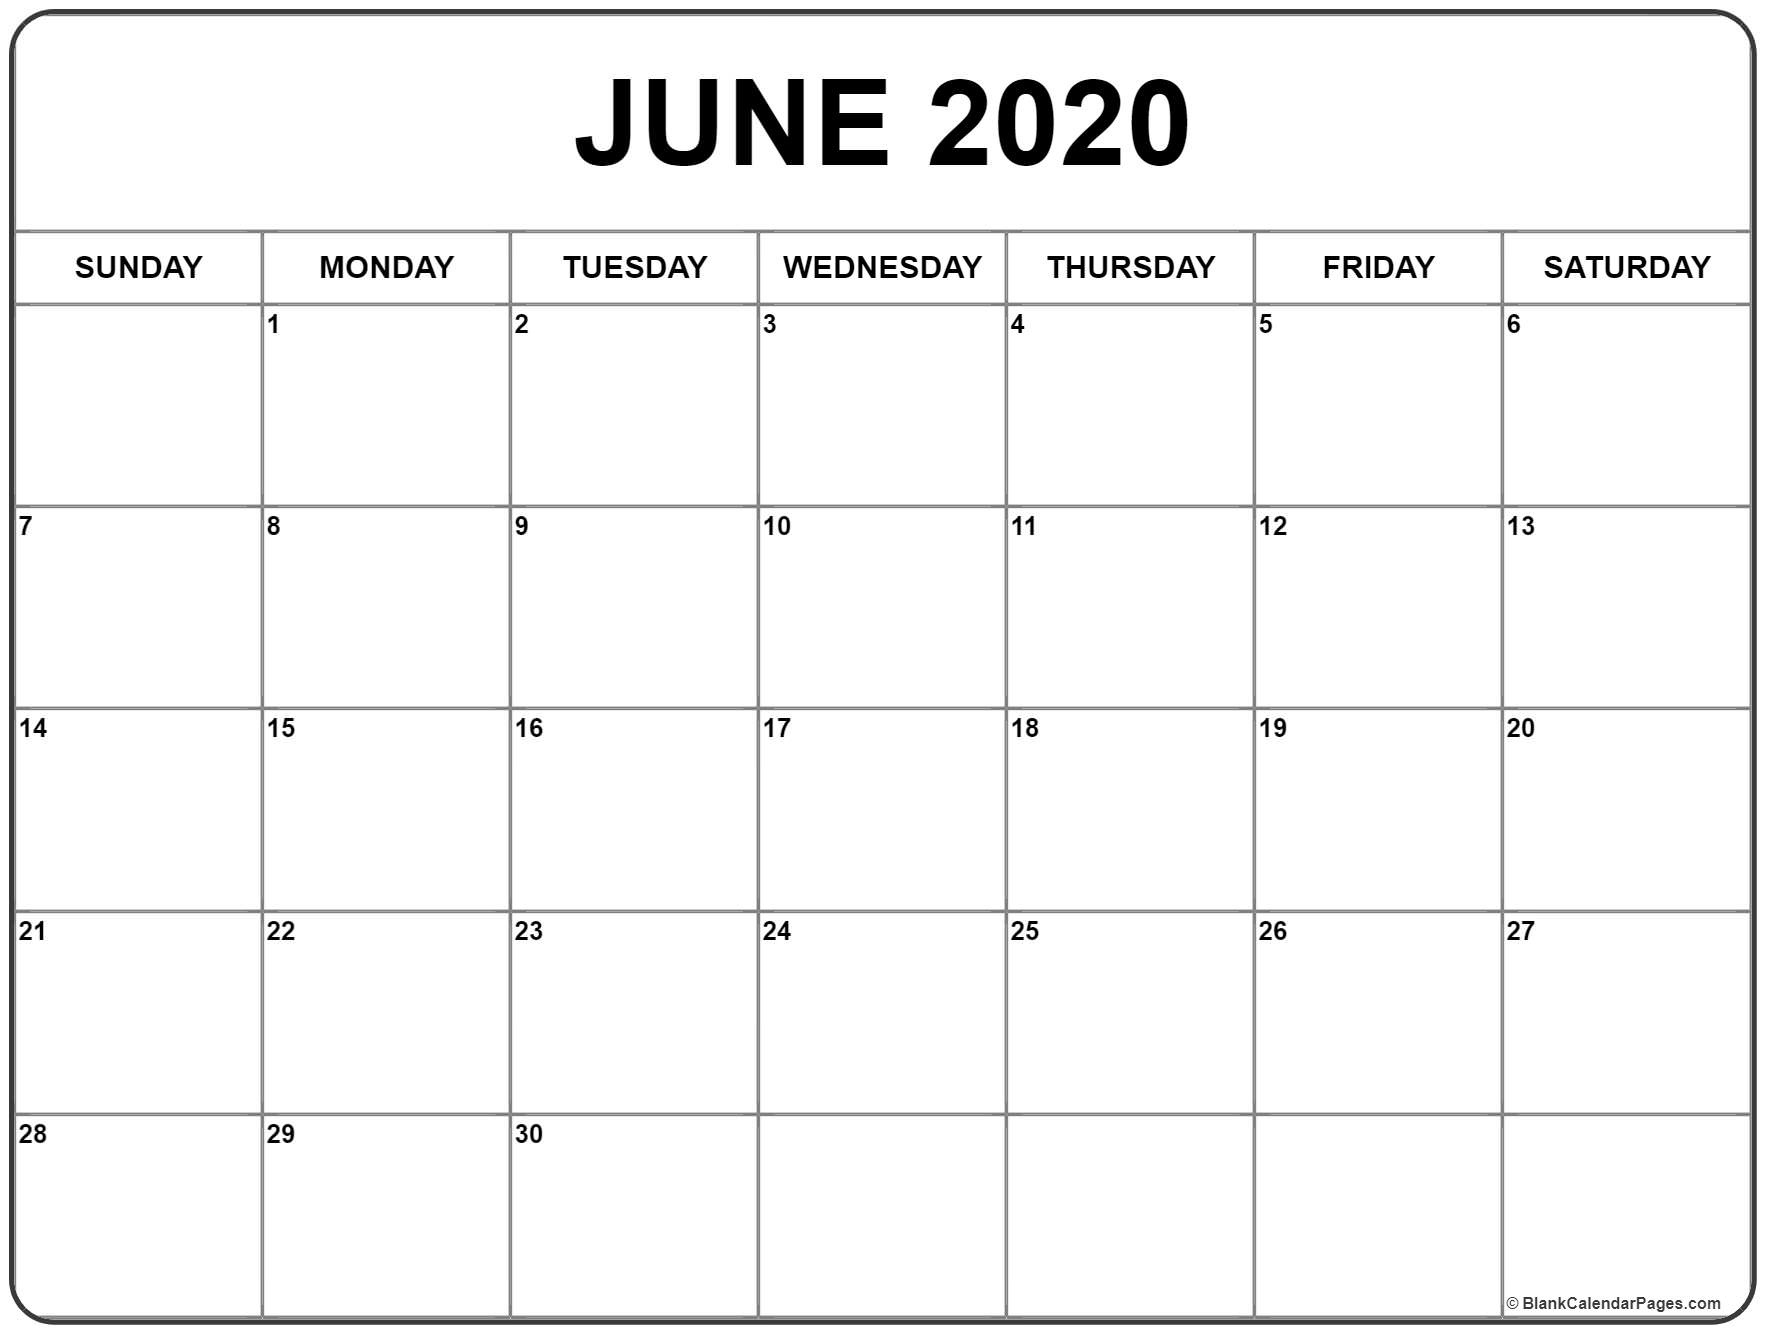 June 2020 Calendar | Free Printable Monthly Calendars_Blank Calendar Of June 2020